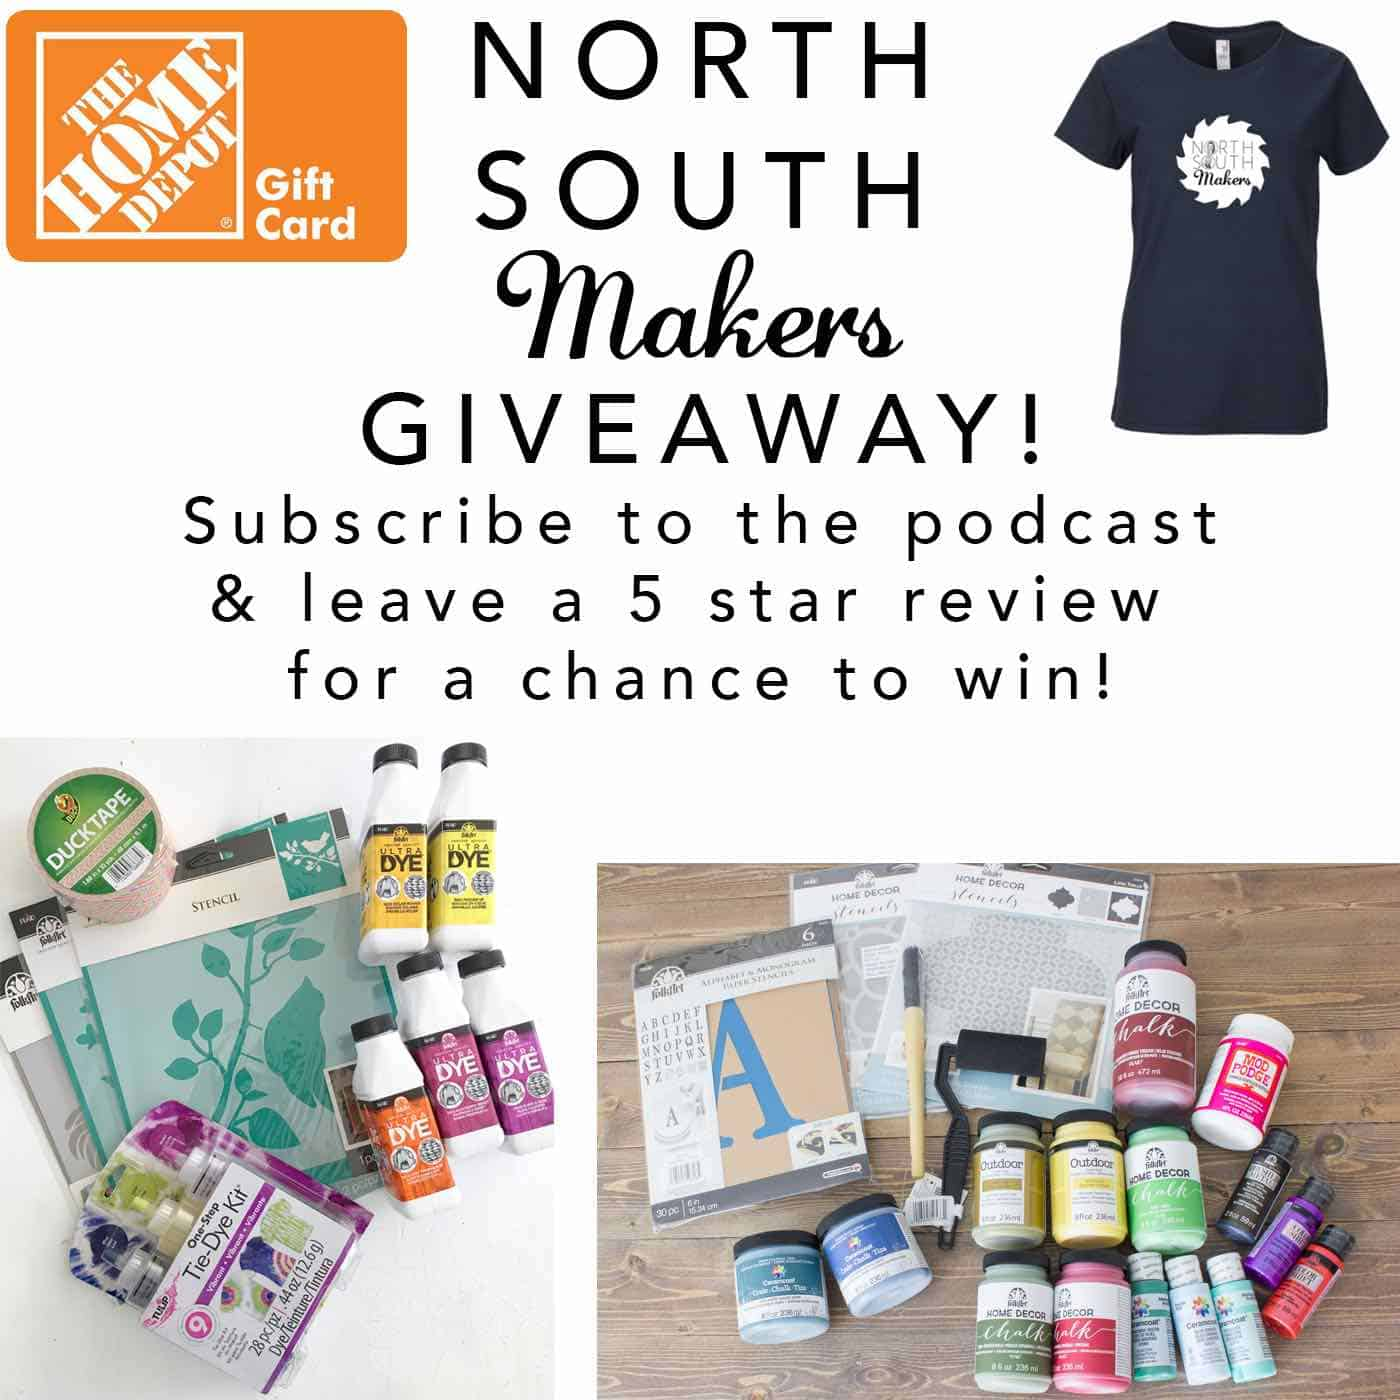 giveaway for the north south makers podcast